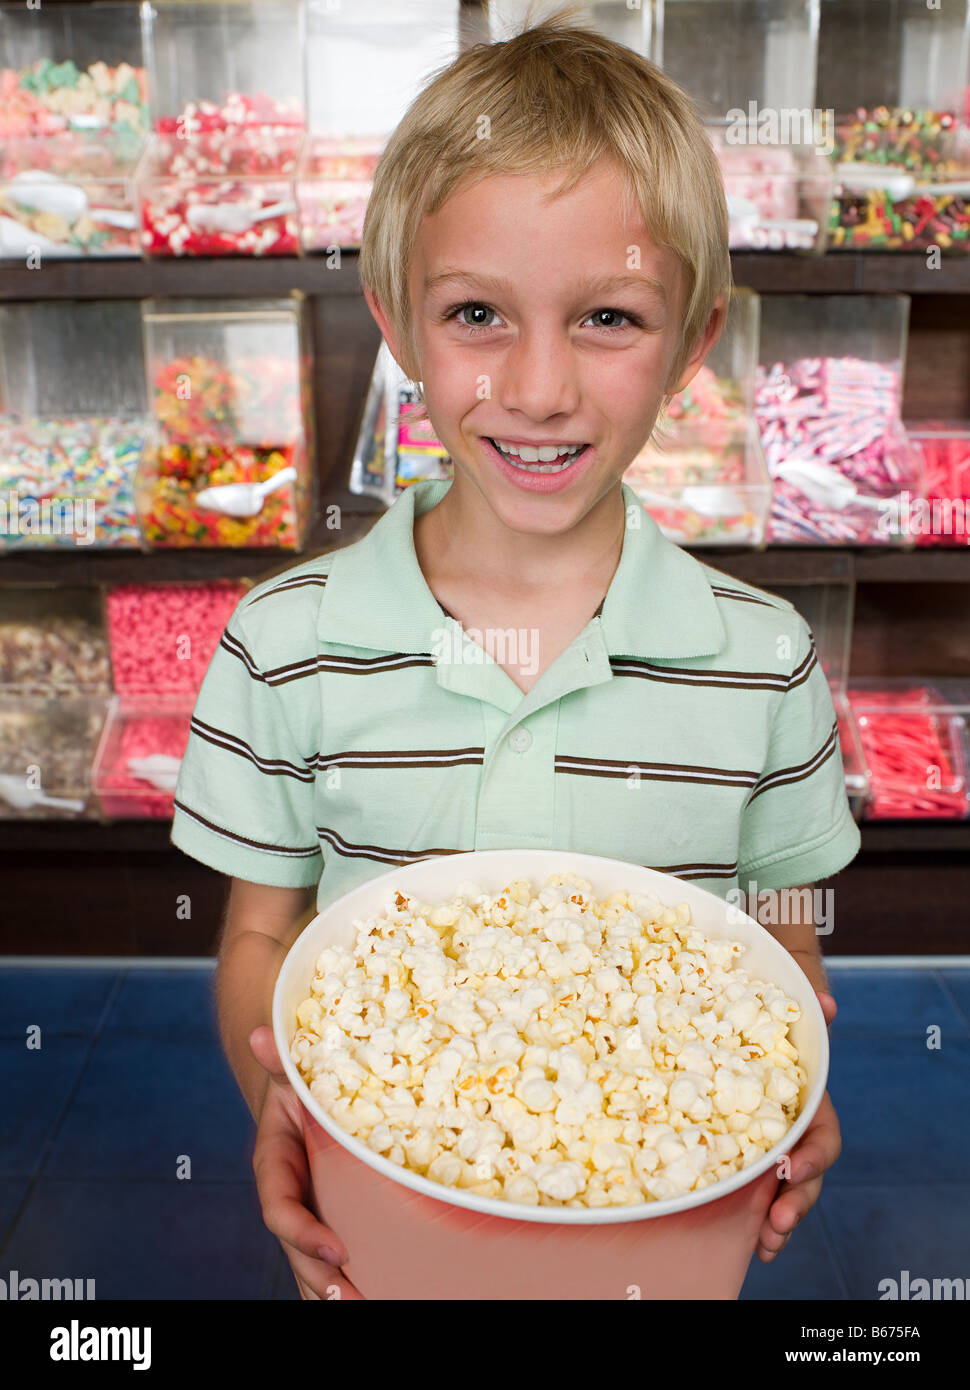 Portrait of a boy holding a tub of popcorn - Stock Image